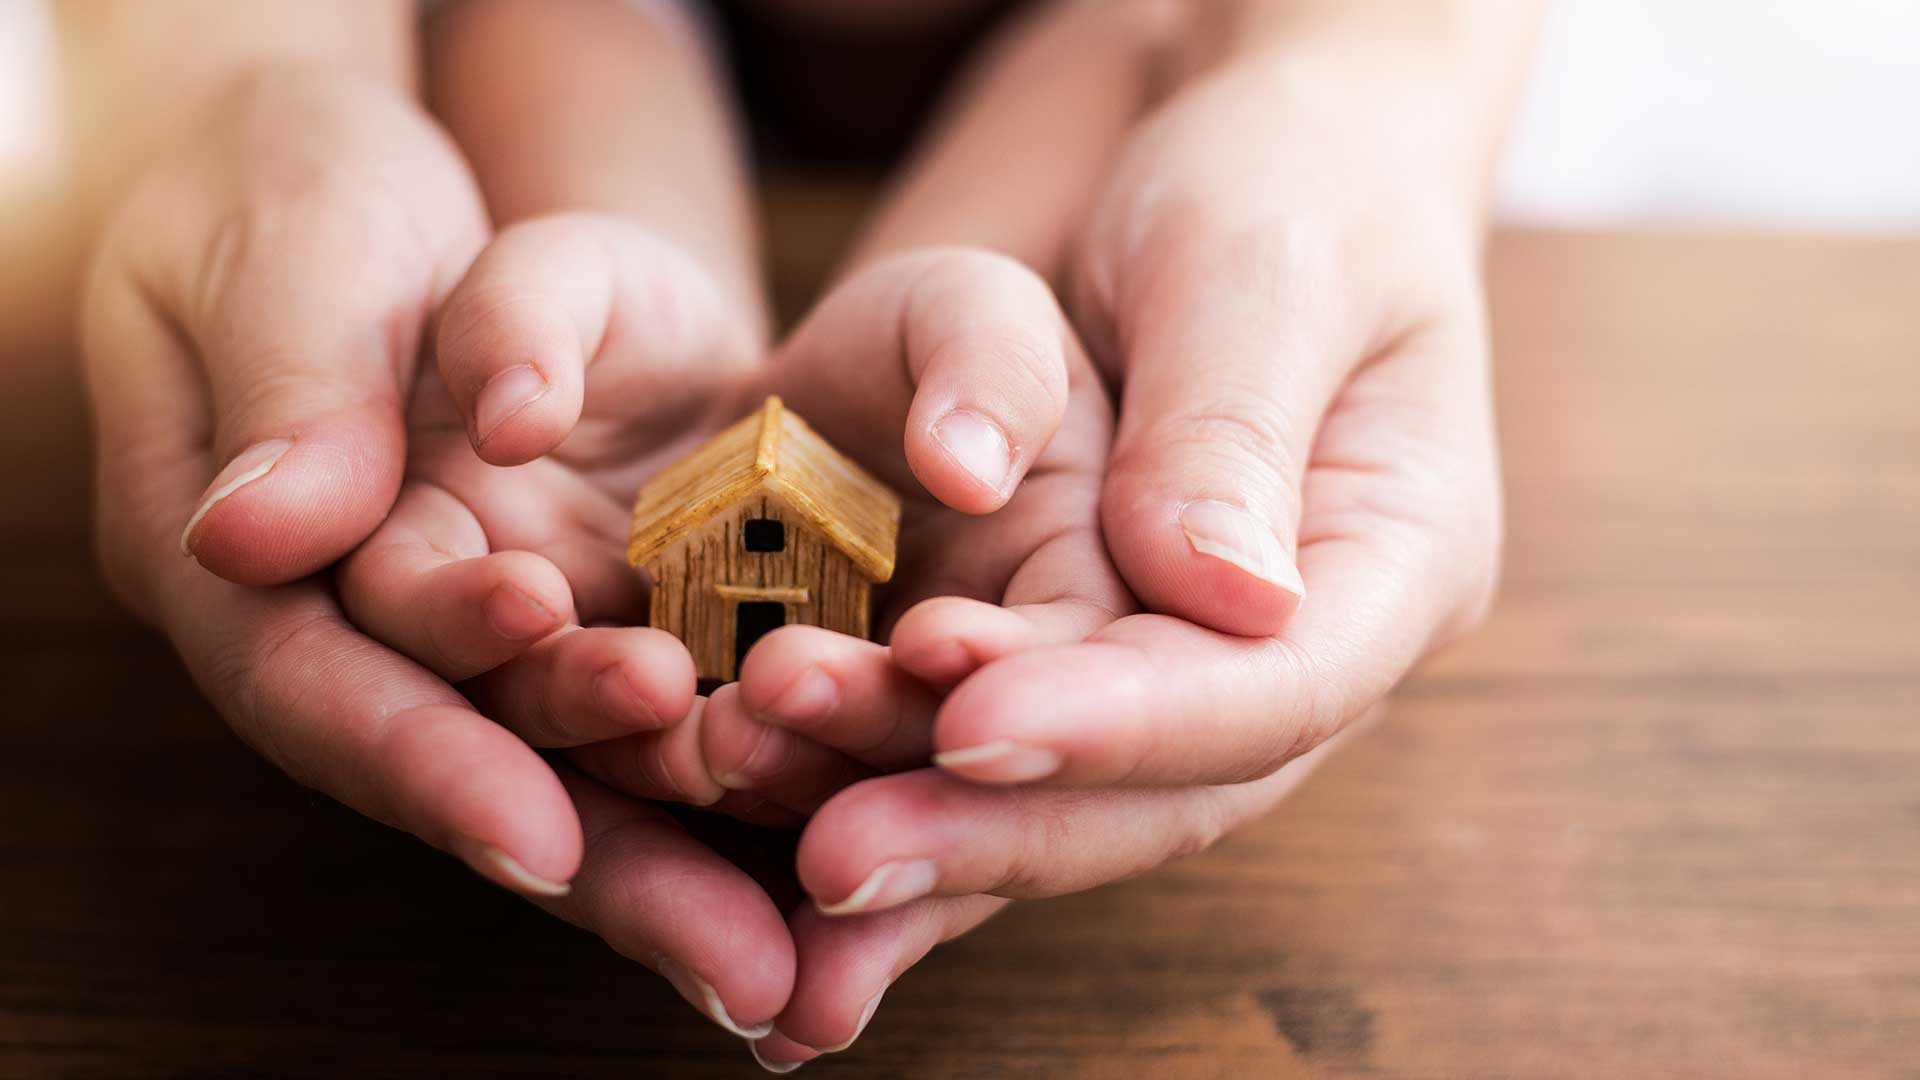 holding a house model; the image used for wealth education